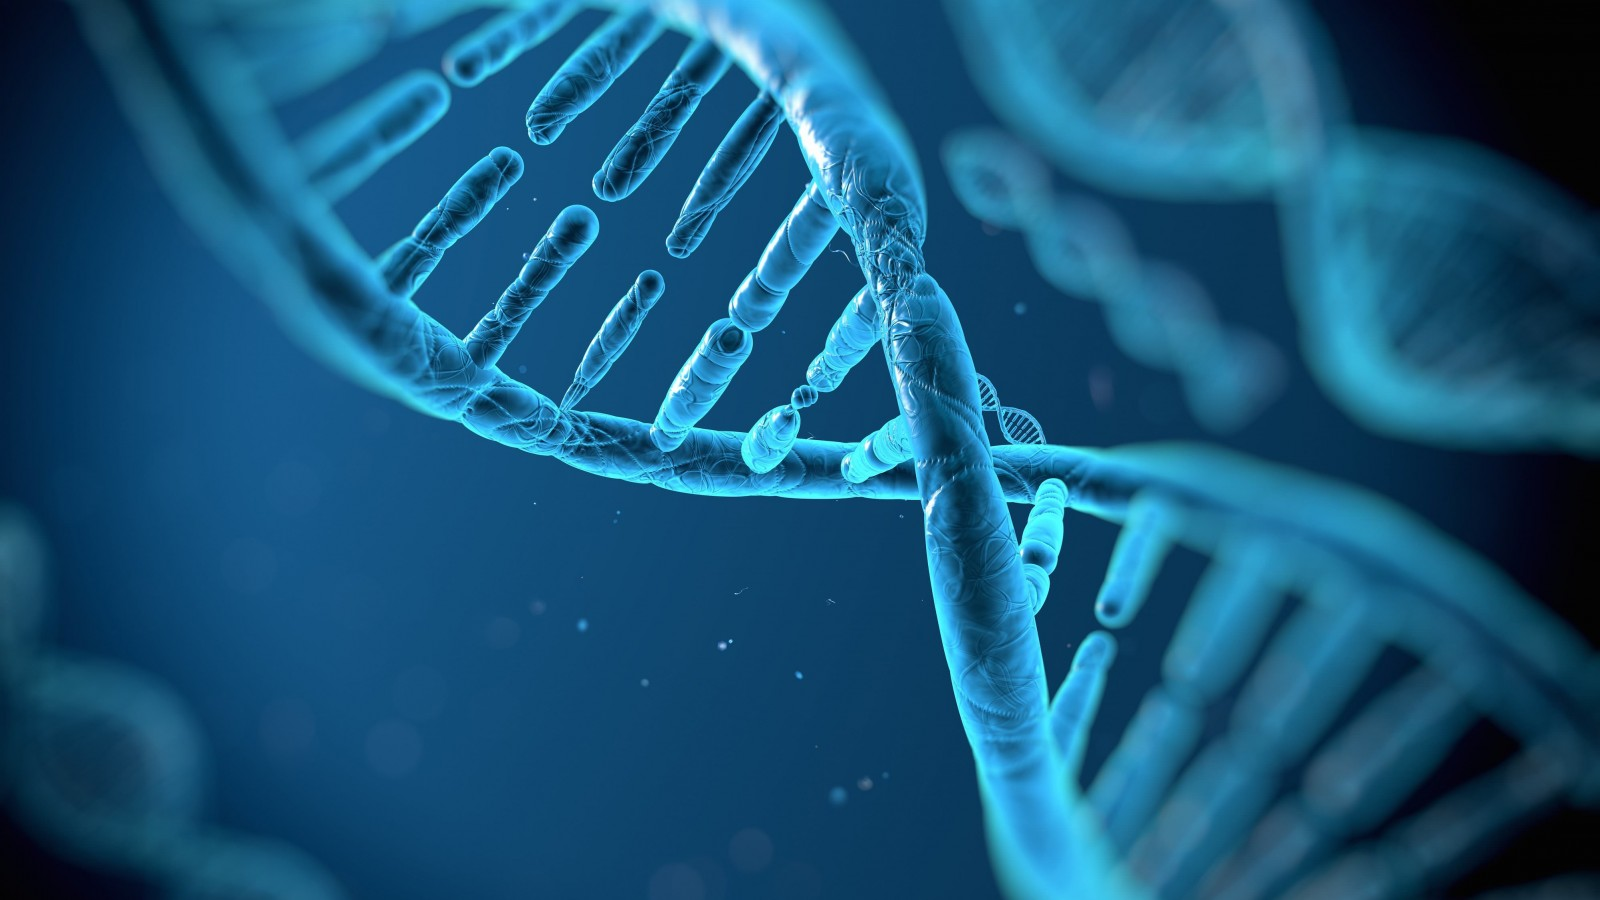 DNA Structure Wallpaper for Desktop 1600x900